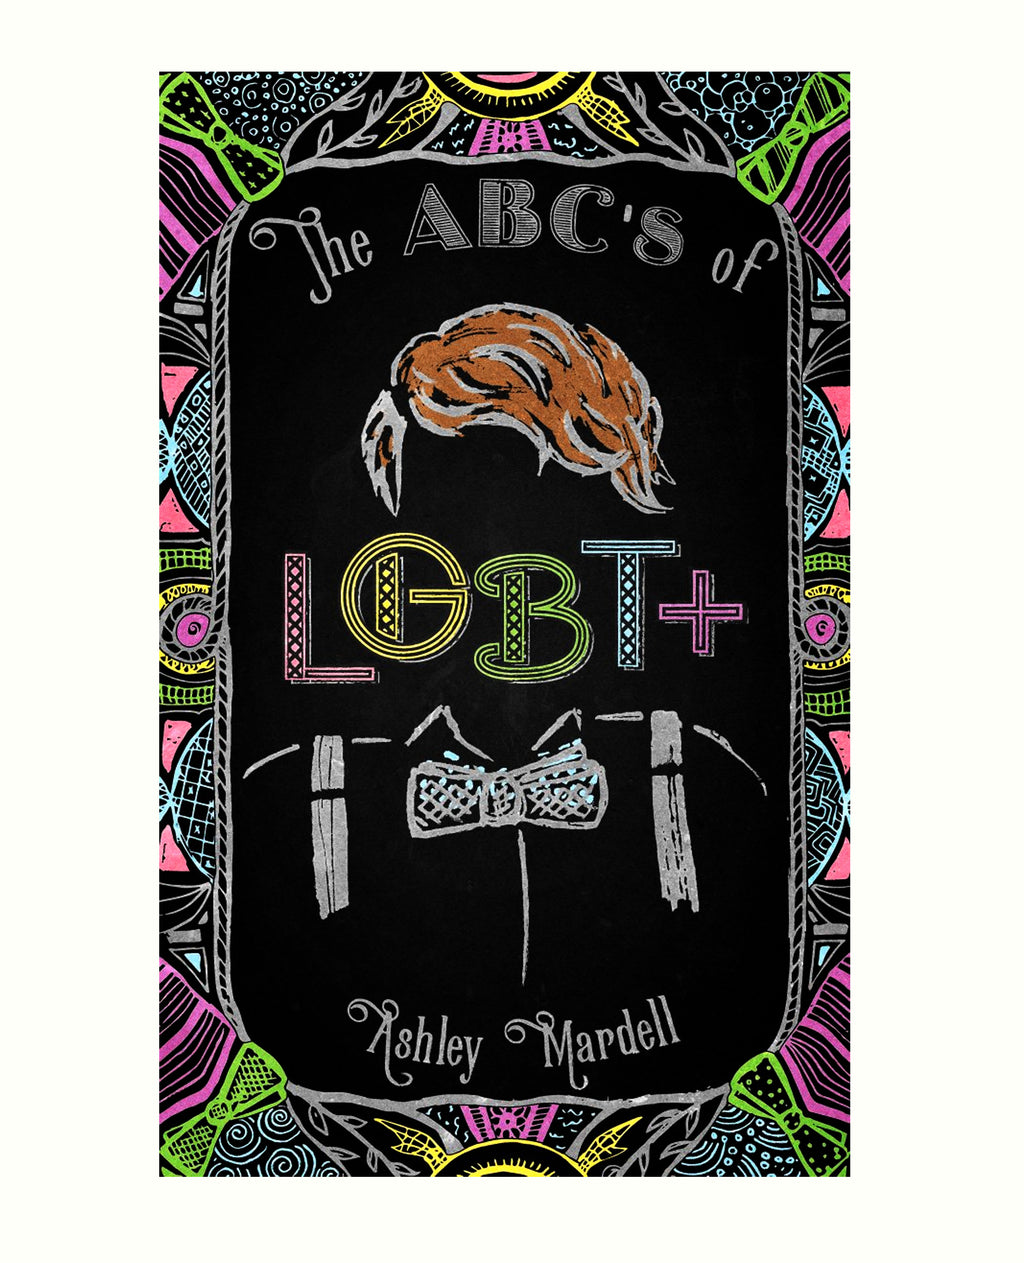 The ABC's of LGBT+ by Ashley Mardell